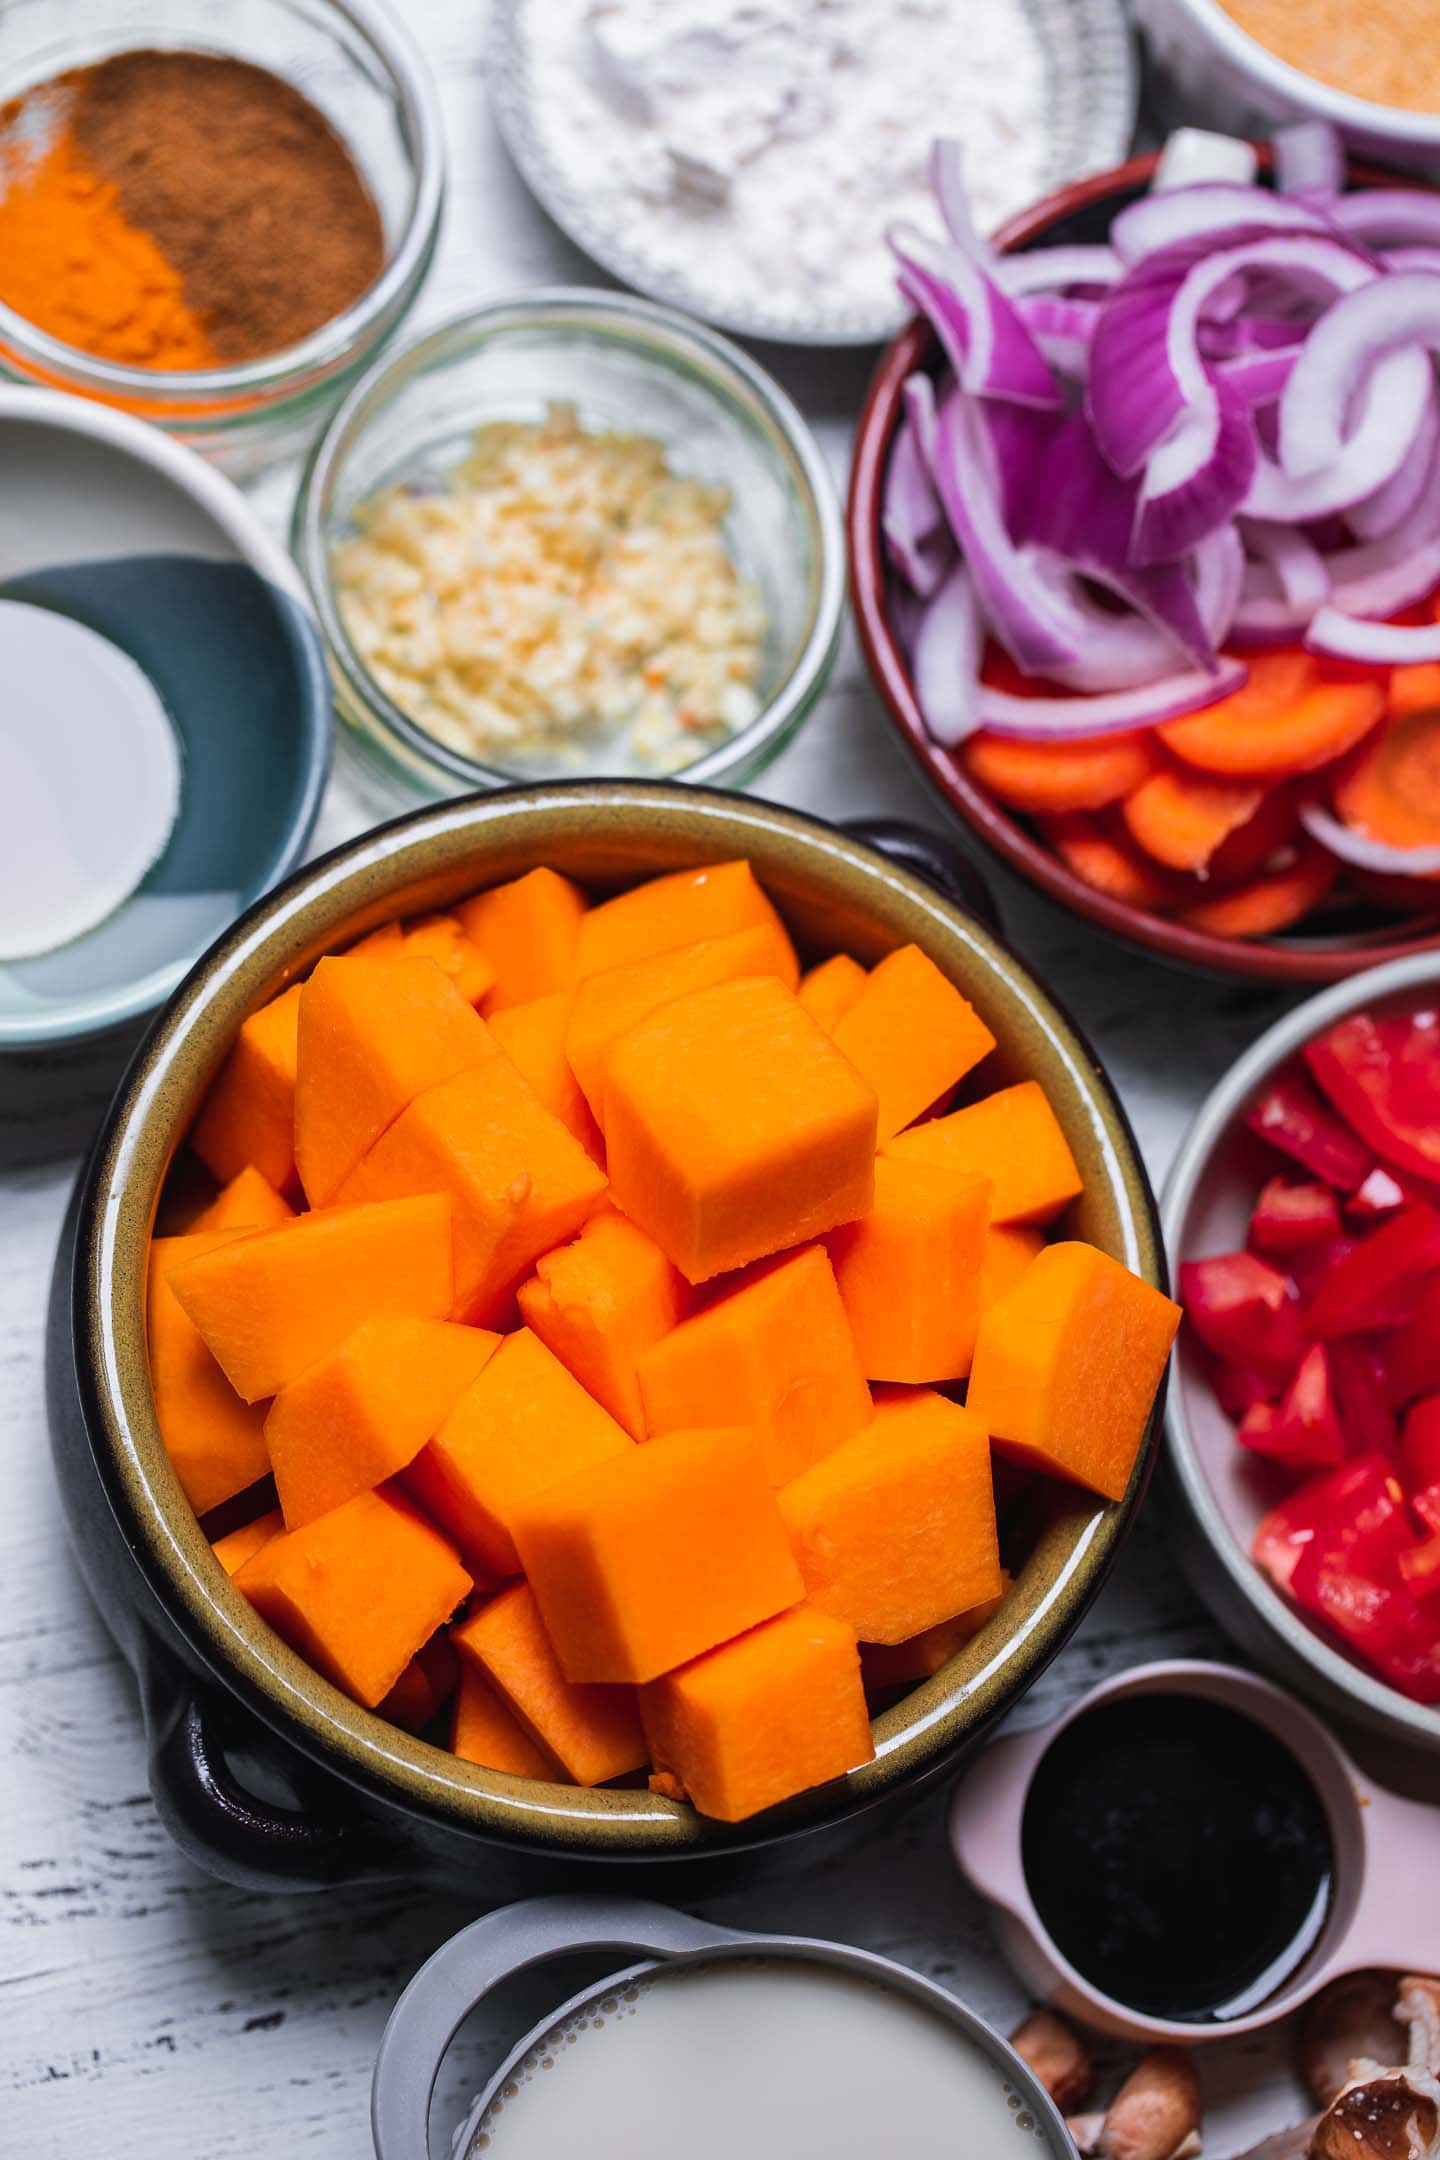 Ingredients for a butternut squash pot pie filling